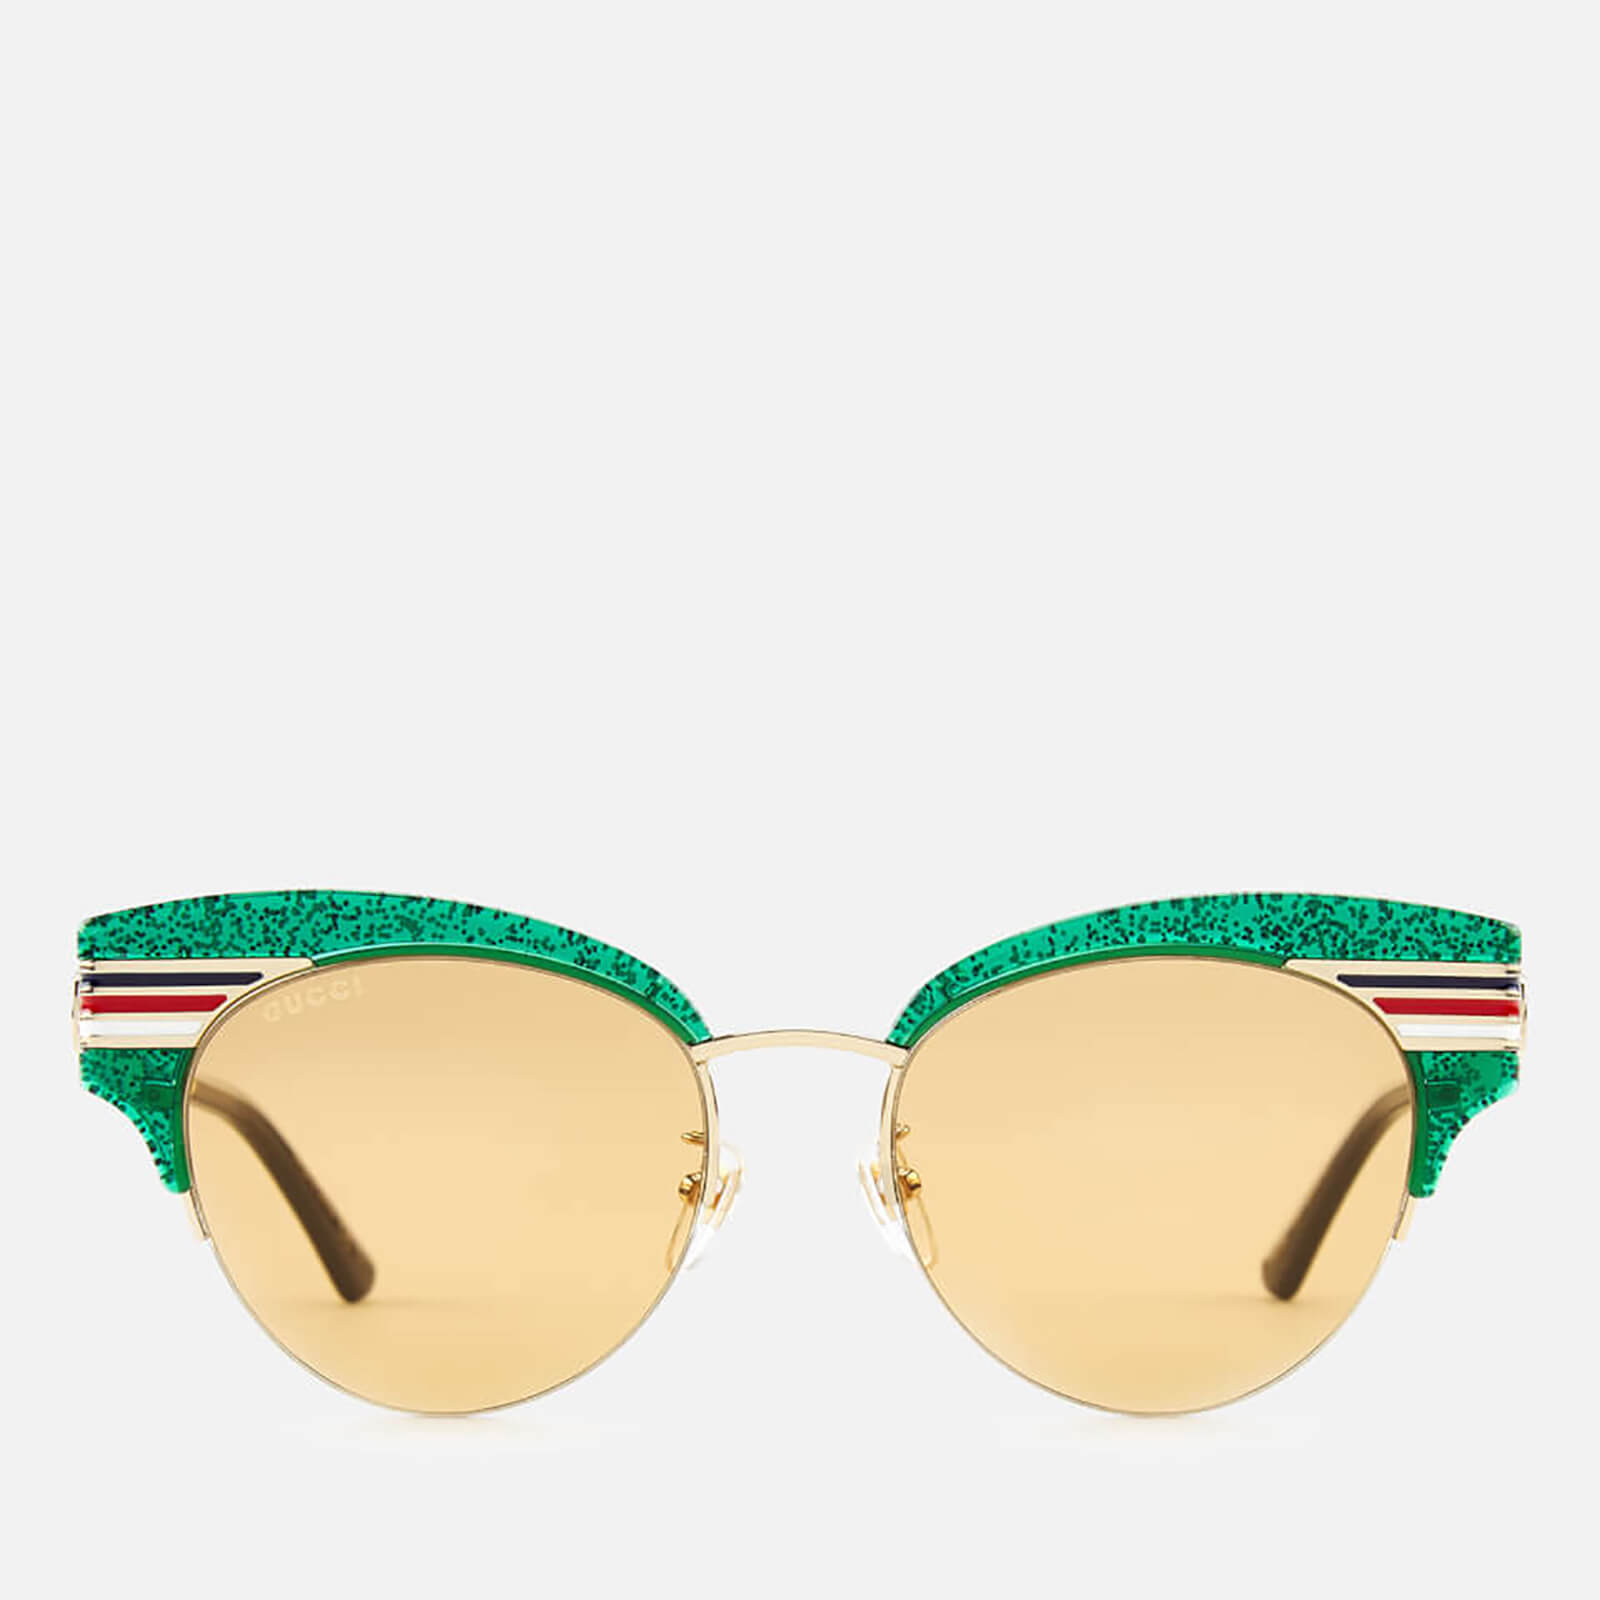 af04063551a Gucci Women s Glitter Cat Eye Sunglasses - Green Gold Brown - Free UK  Delivery over £50